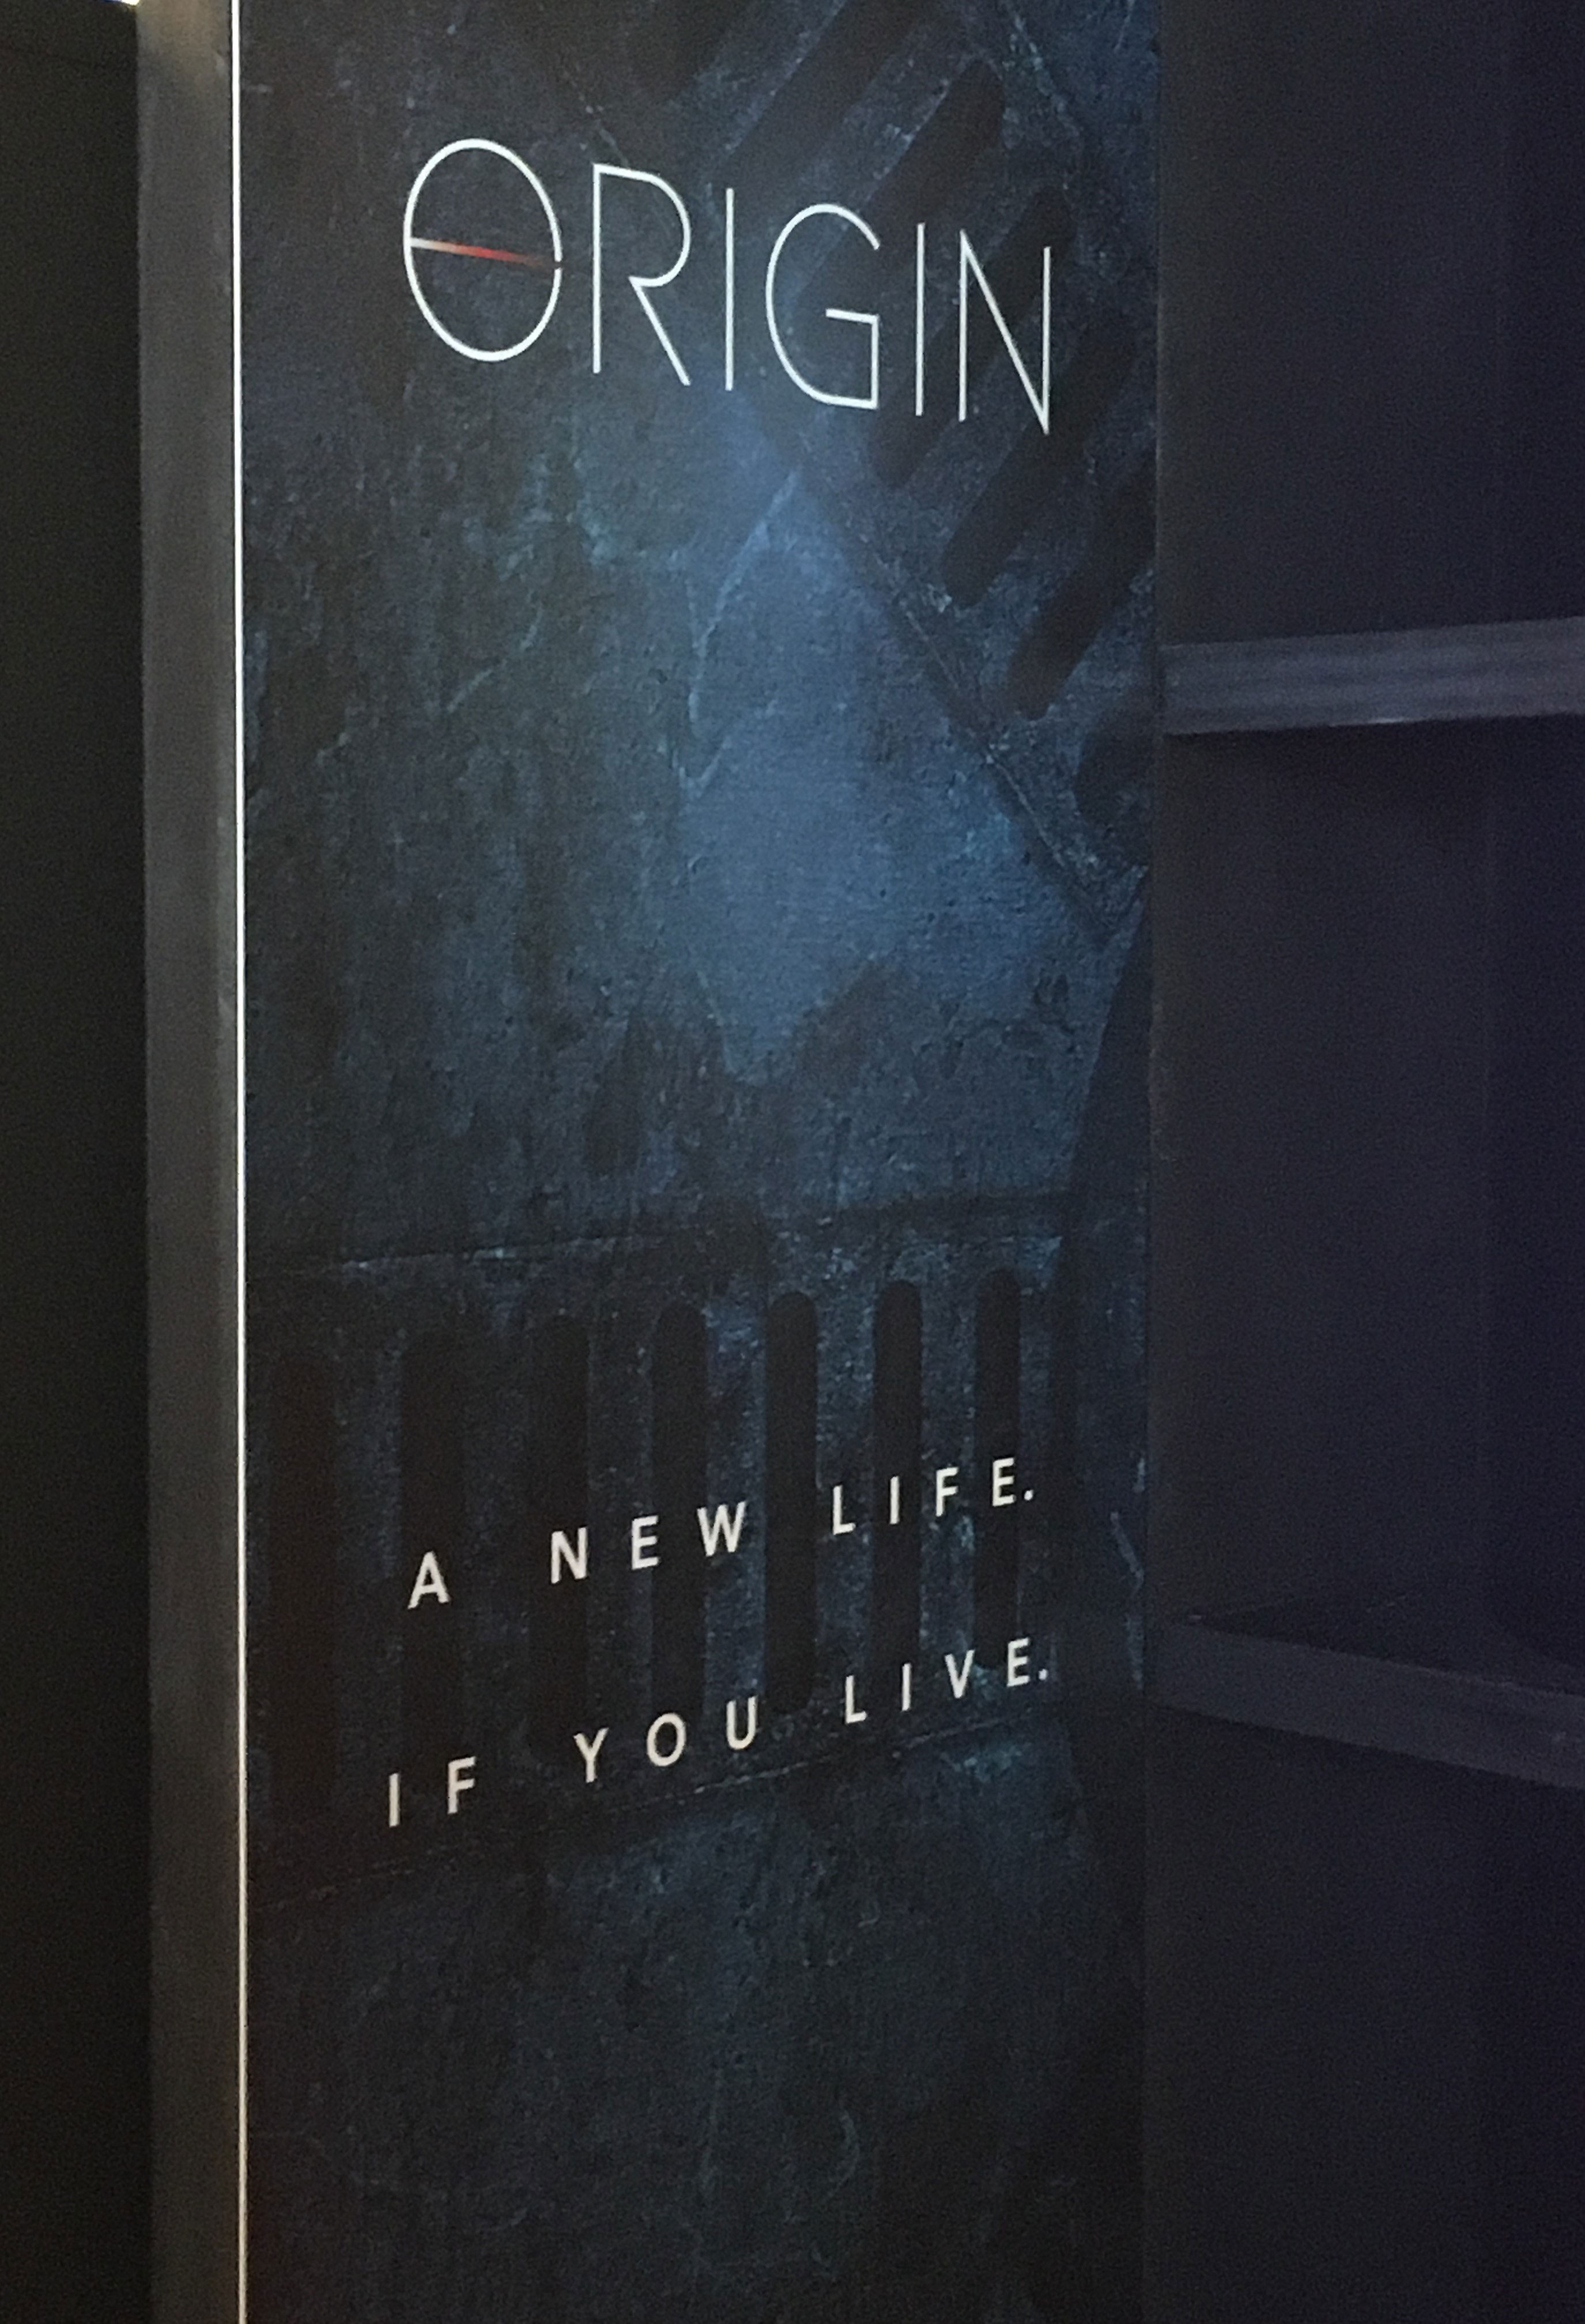 """Poster with """"A New Life If You Live"""" tagline at the """"Origin"""" series premiere"""